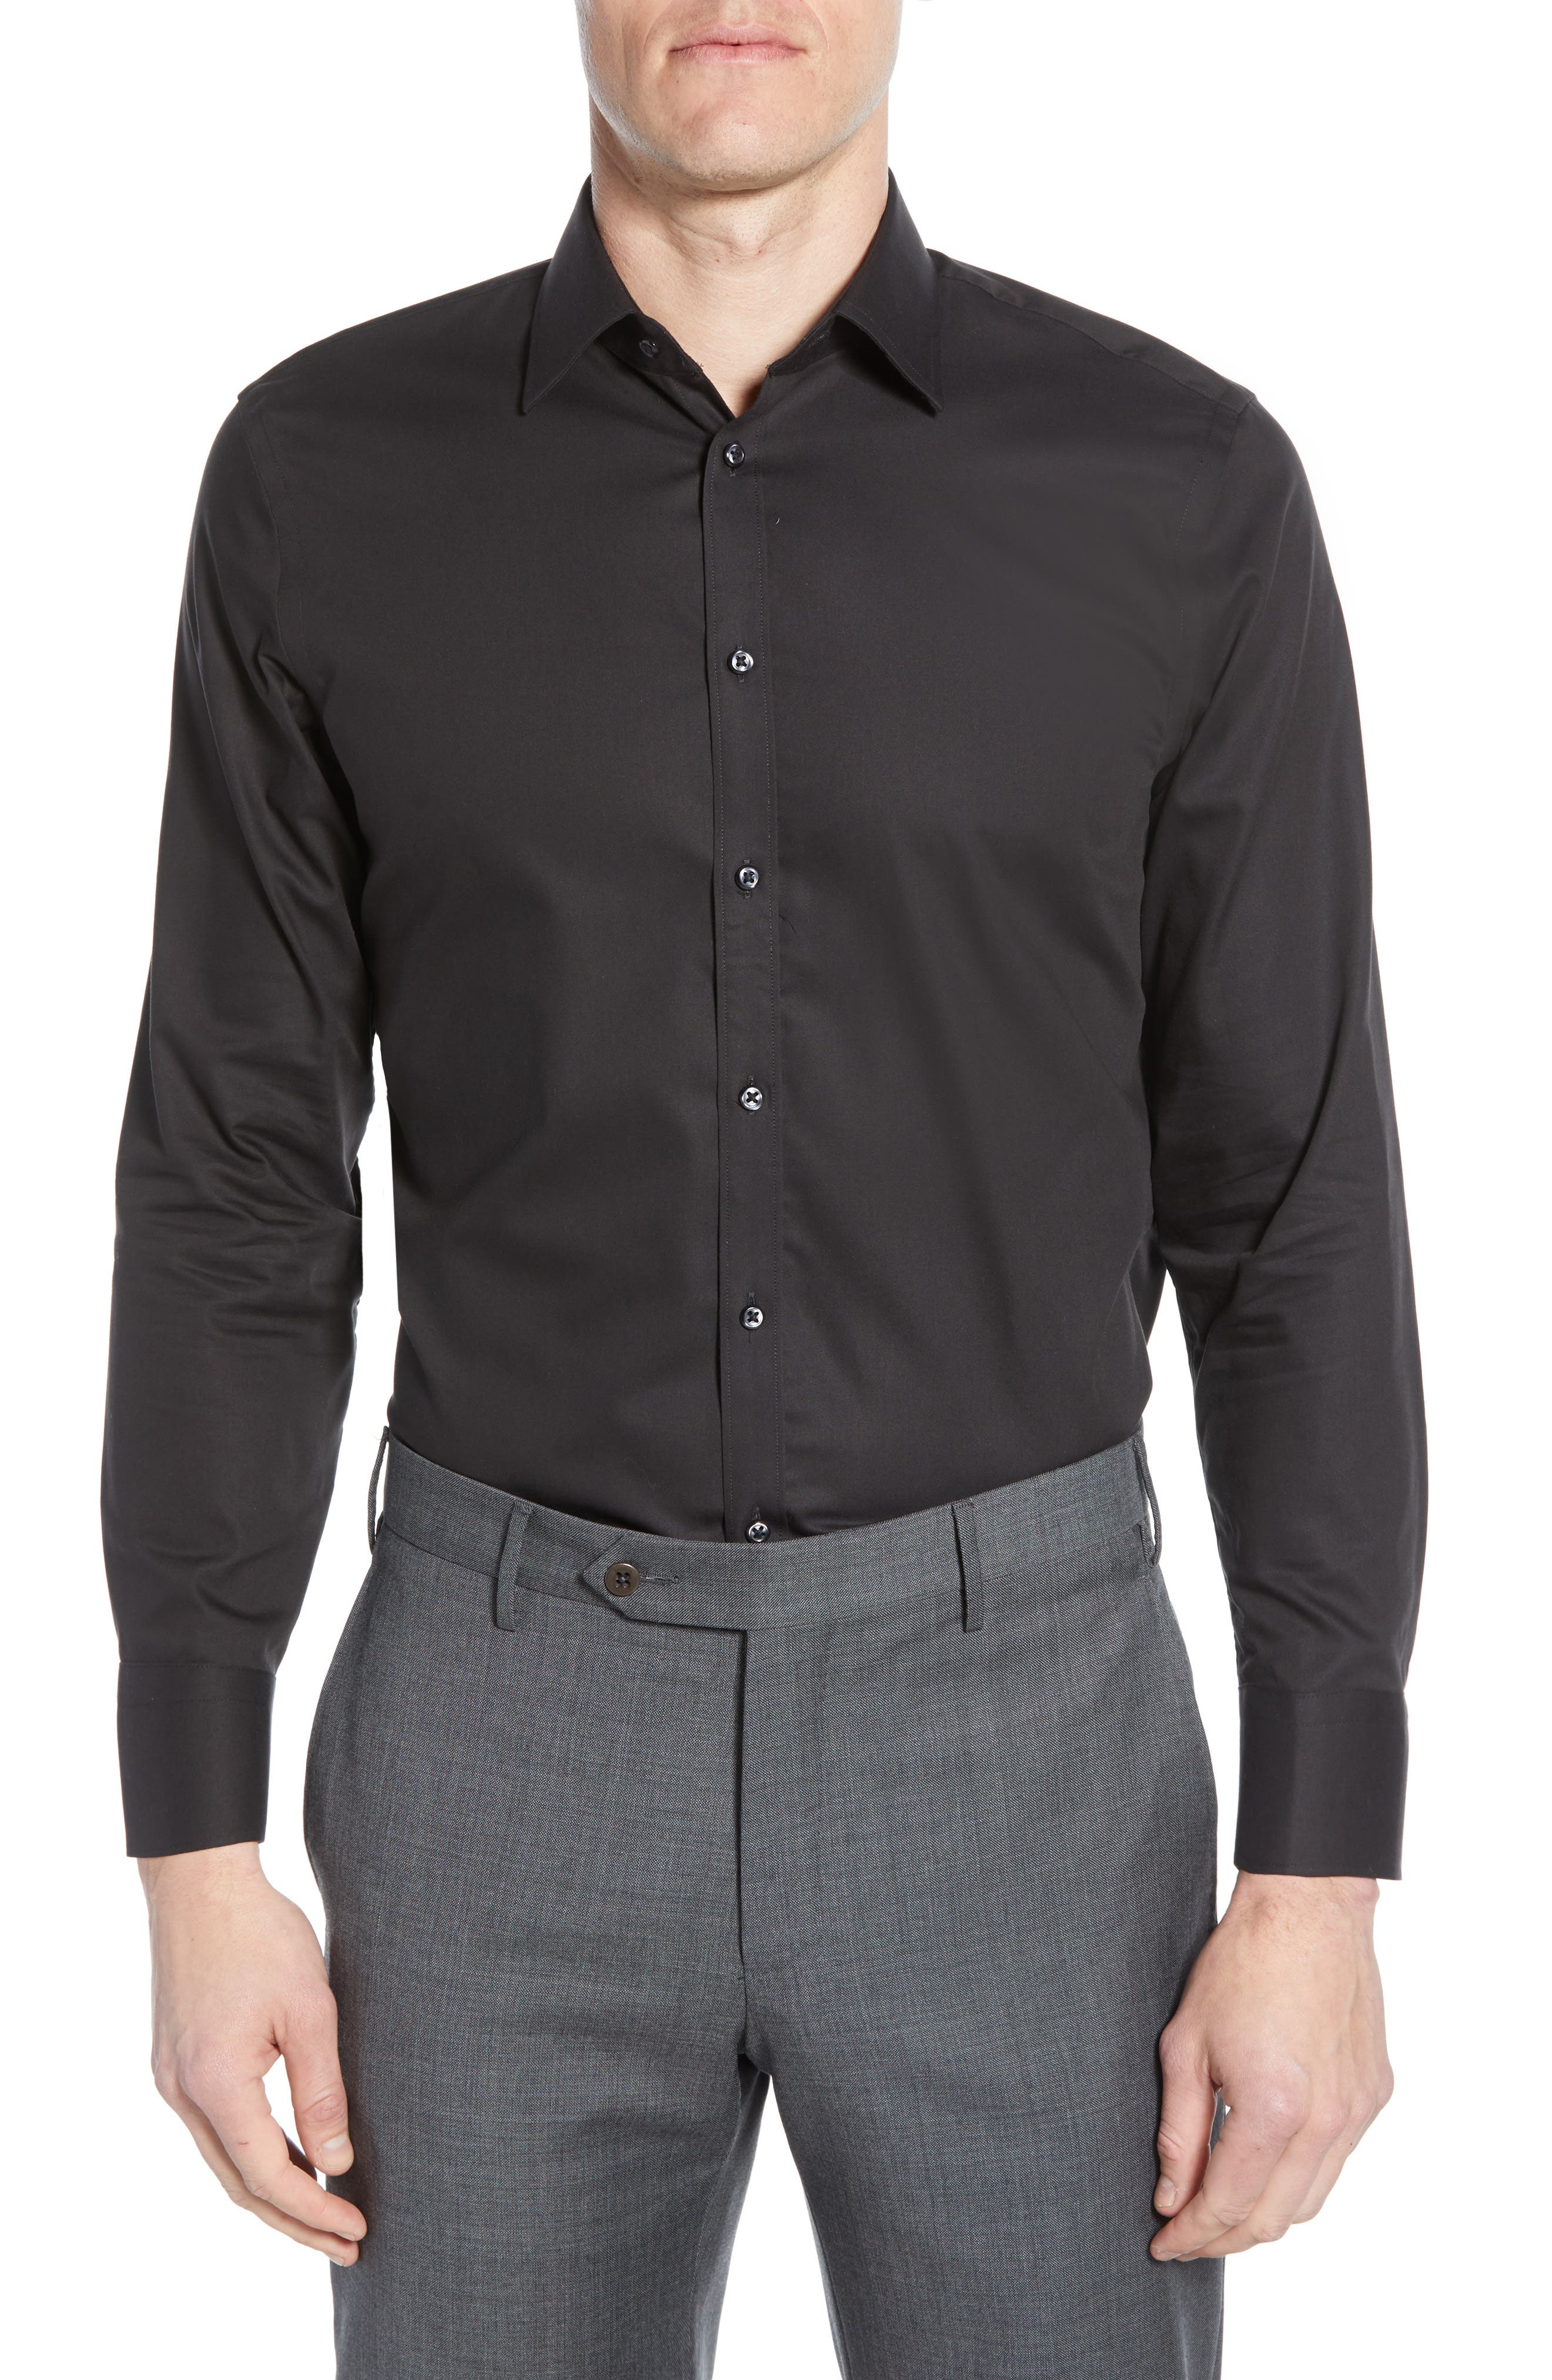 Extra Trim Fit Non-Iron Solid Dress Shirt, Main, color, 001